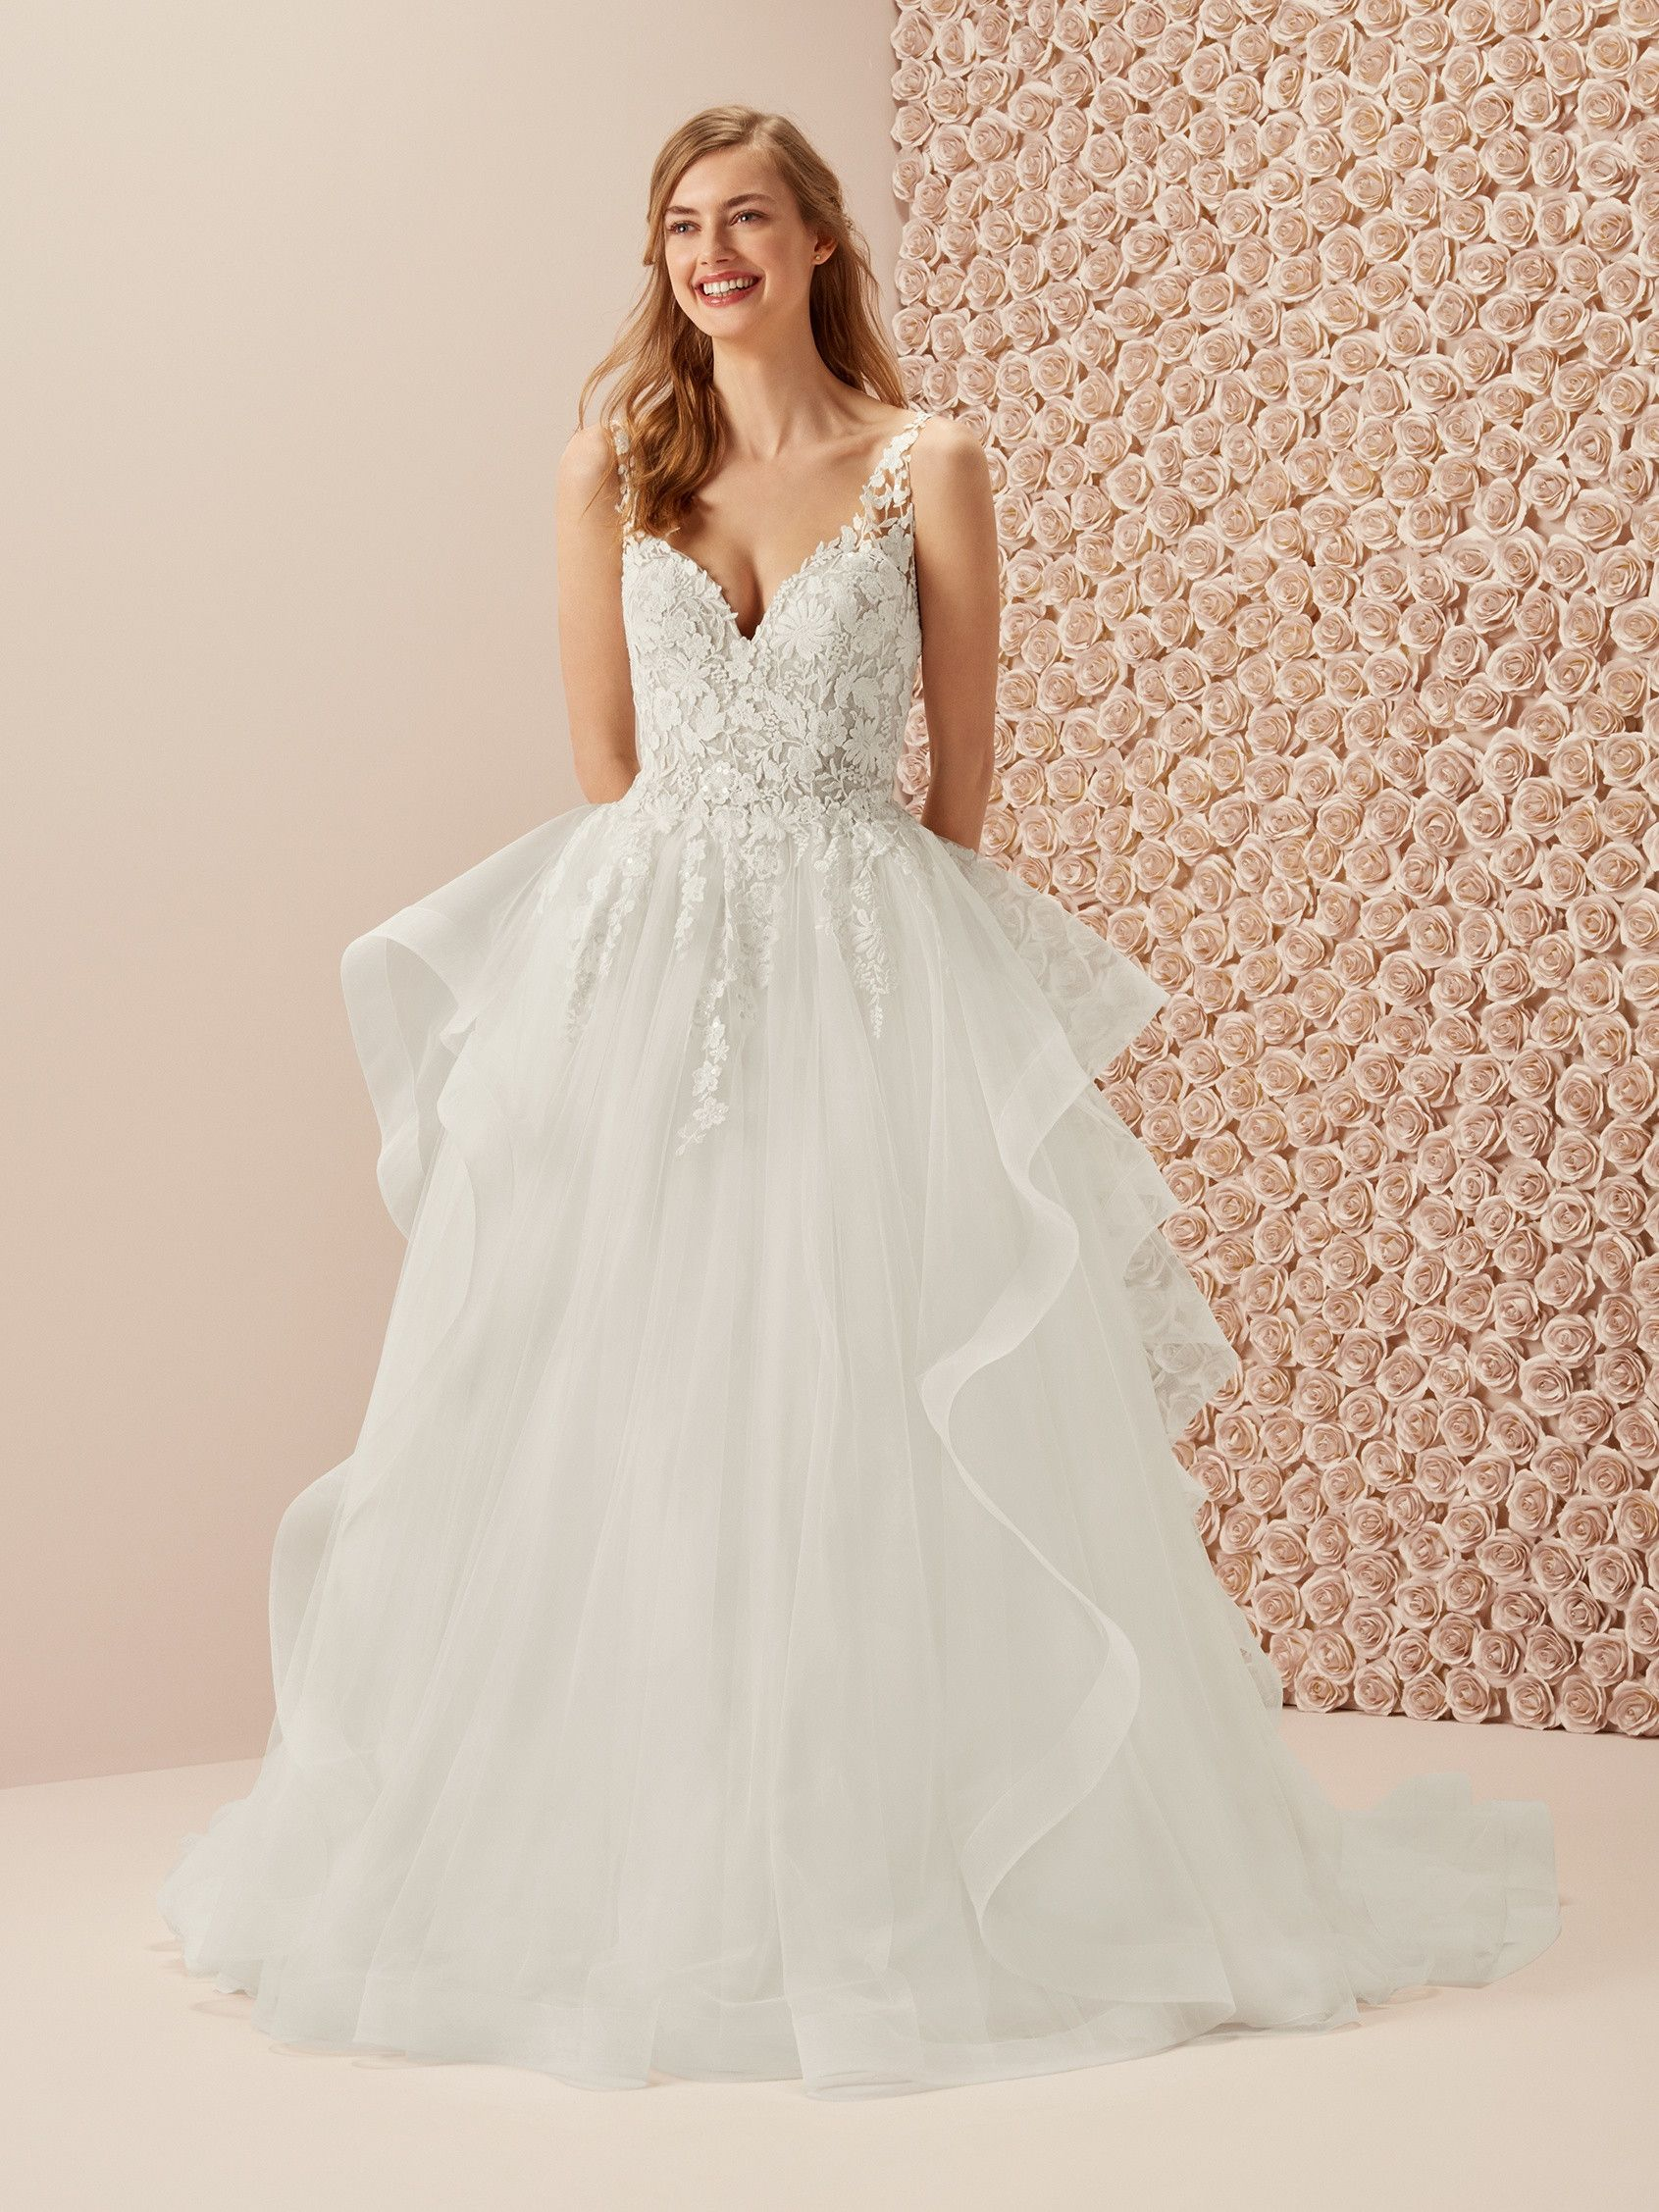 1b4310e2d8bc *love this one!* Marea is a princess wedding dress with a very full skirt  crafted of uneven ruffles in tulle and a lovely lace bodice with flowers |  ...